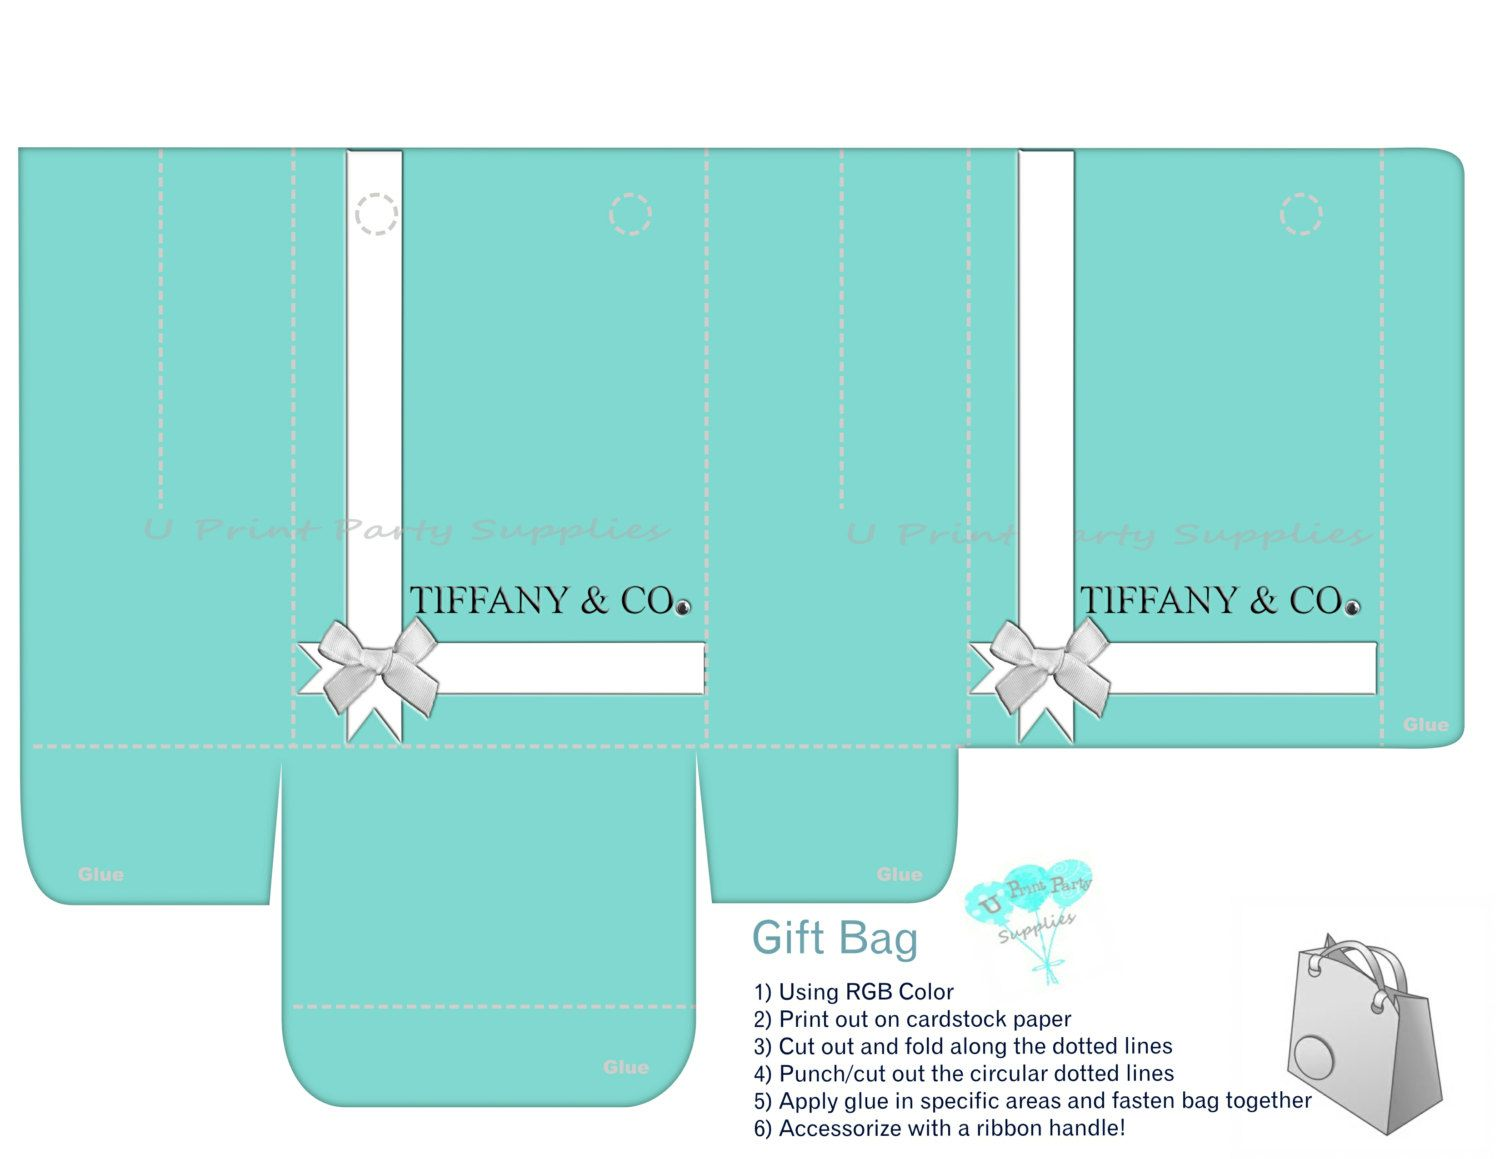 Gifts >> Best 25+ Tiffany gifts ideas on Pinterest | Tiffany christmas gifts, Tiffany christmas presents ...